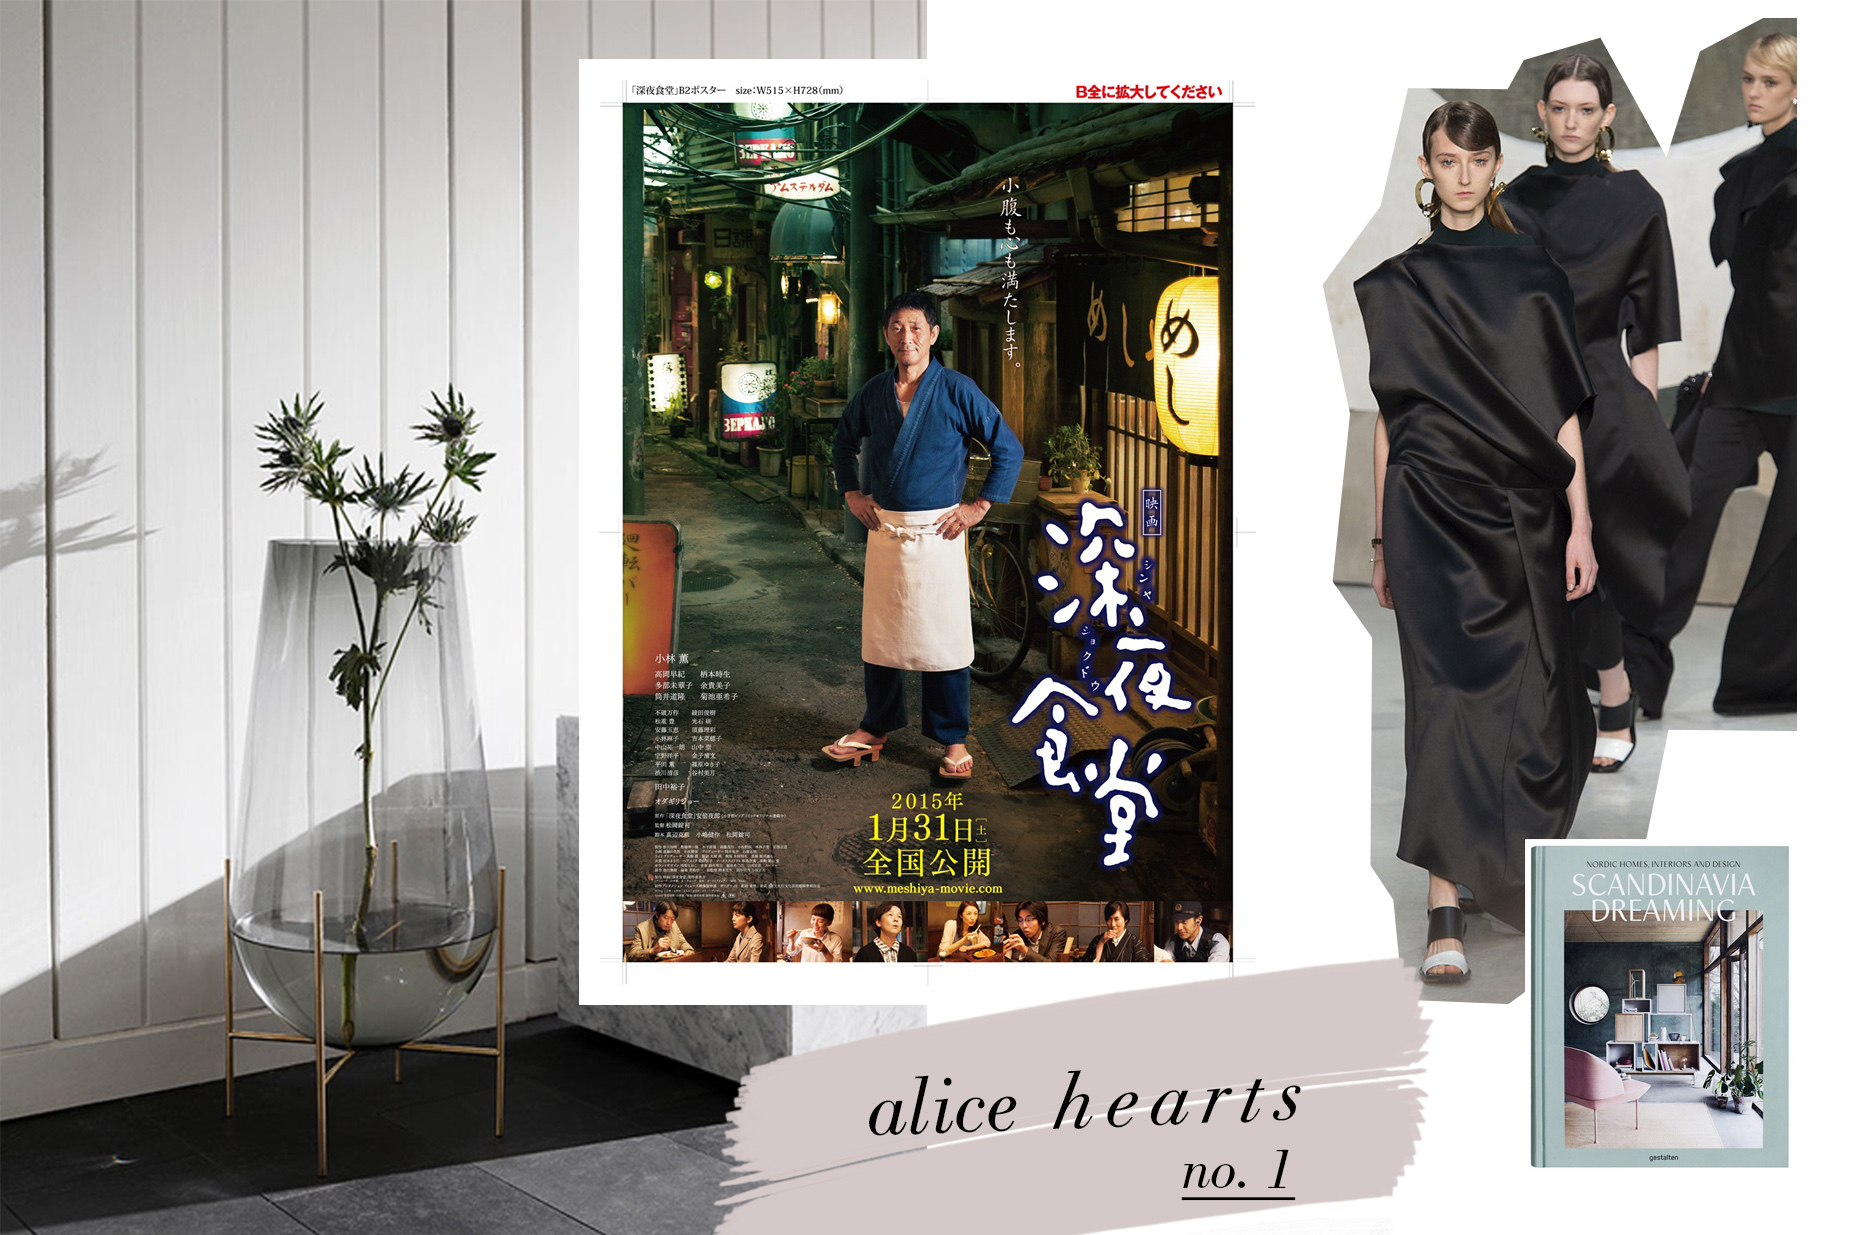 Alice Hearts #1 - Midnight Diner: Tokyo Stories, Menu Èchasse Vase, Marni S/S 16, Scandinavia Dreaming